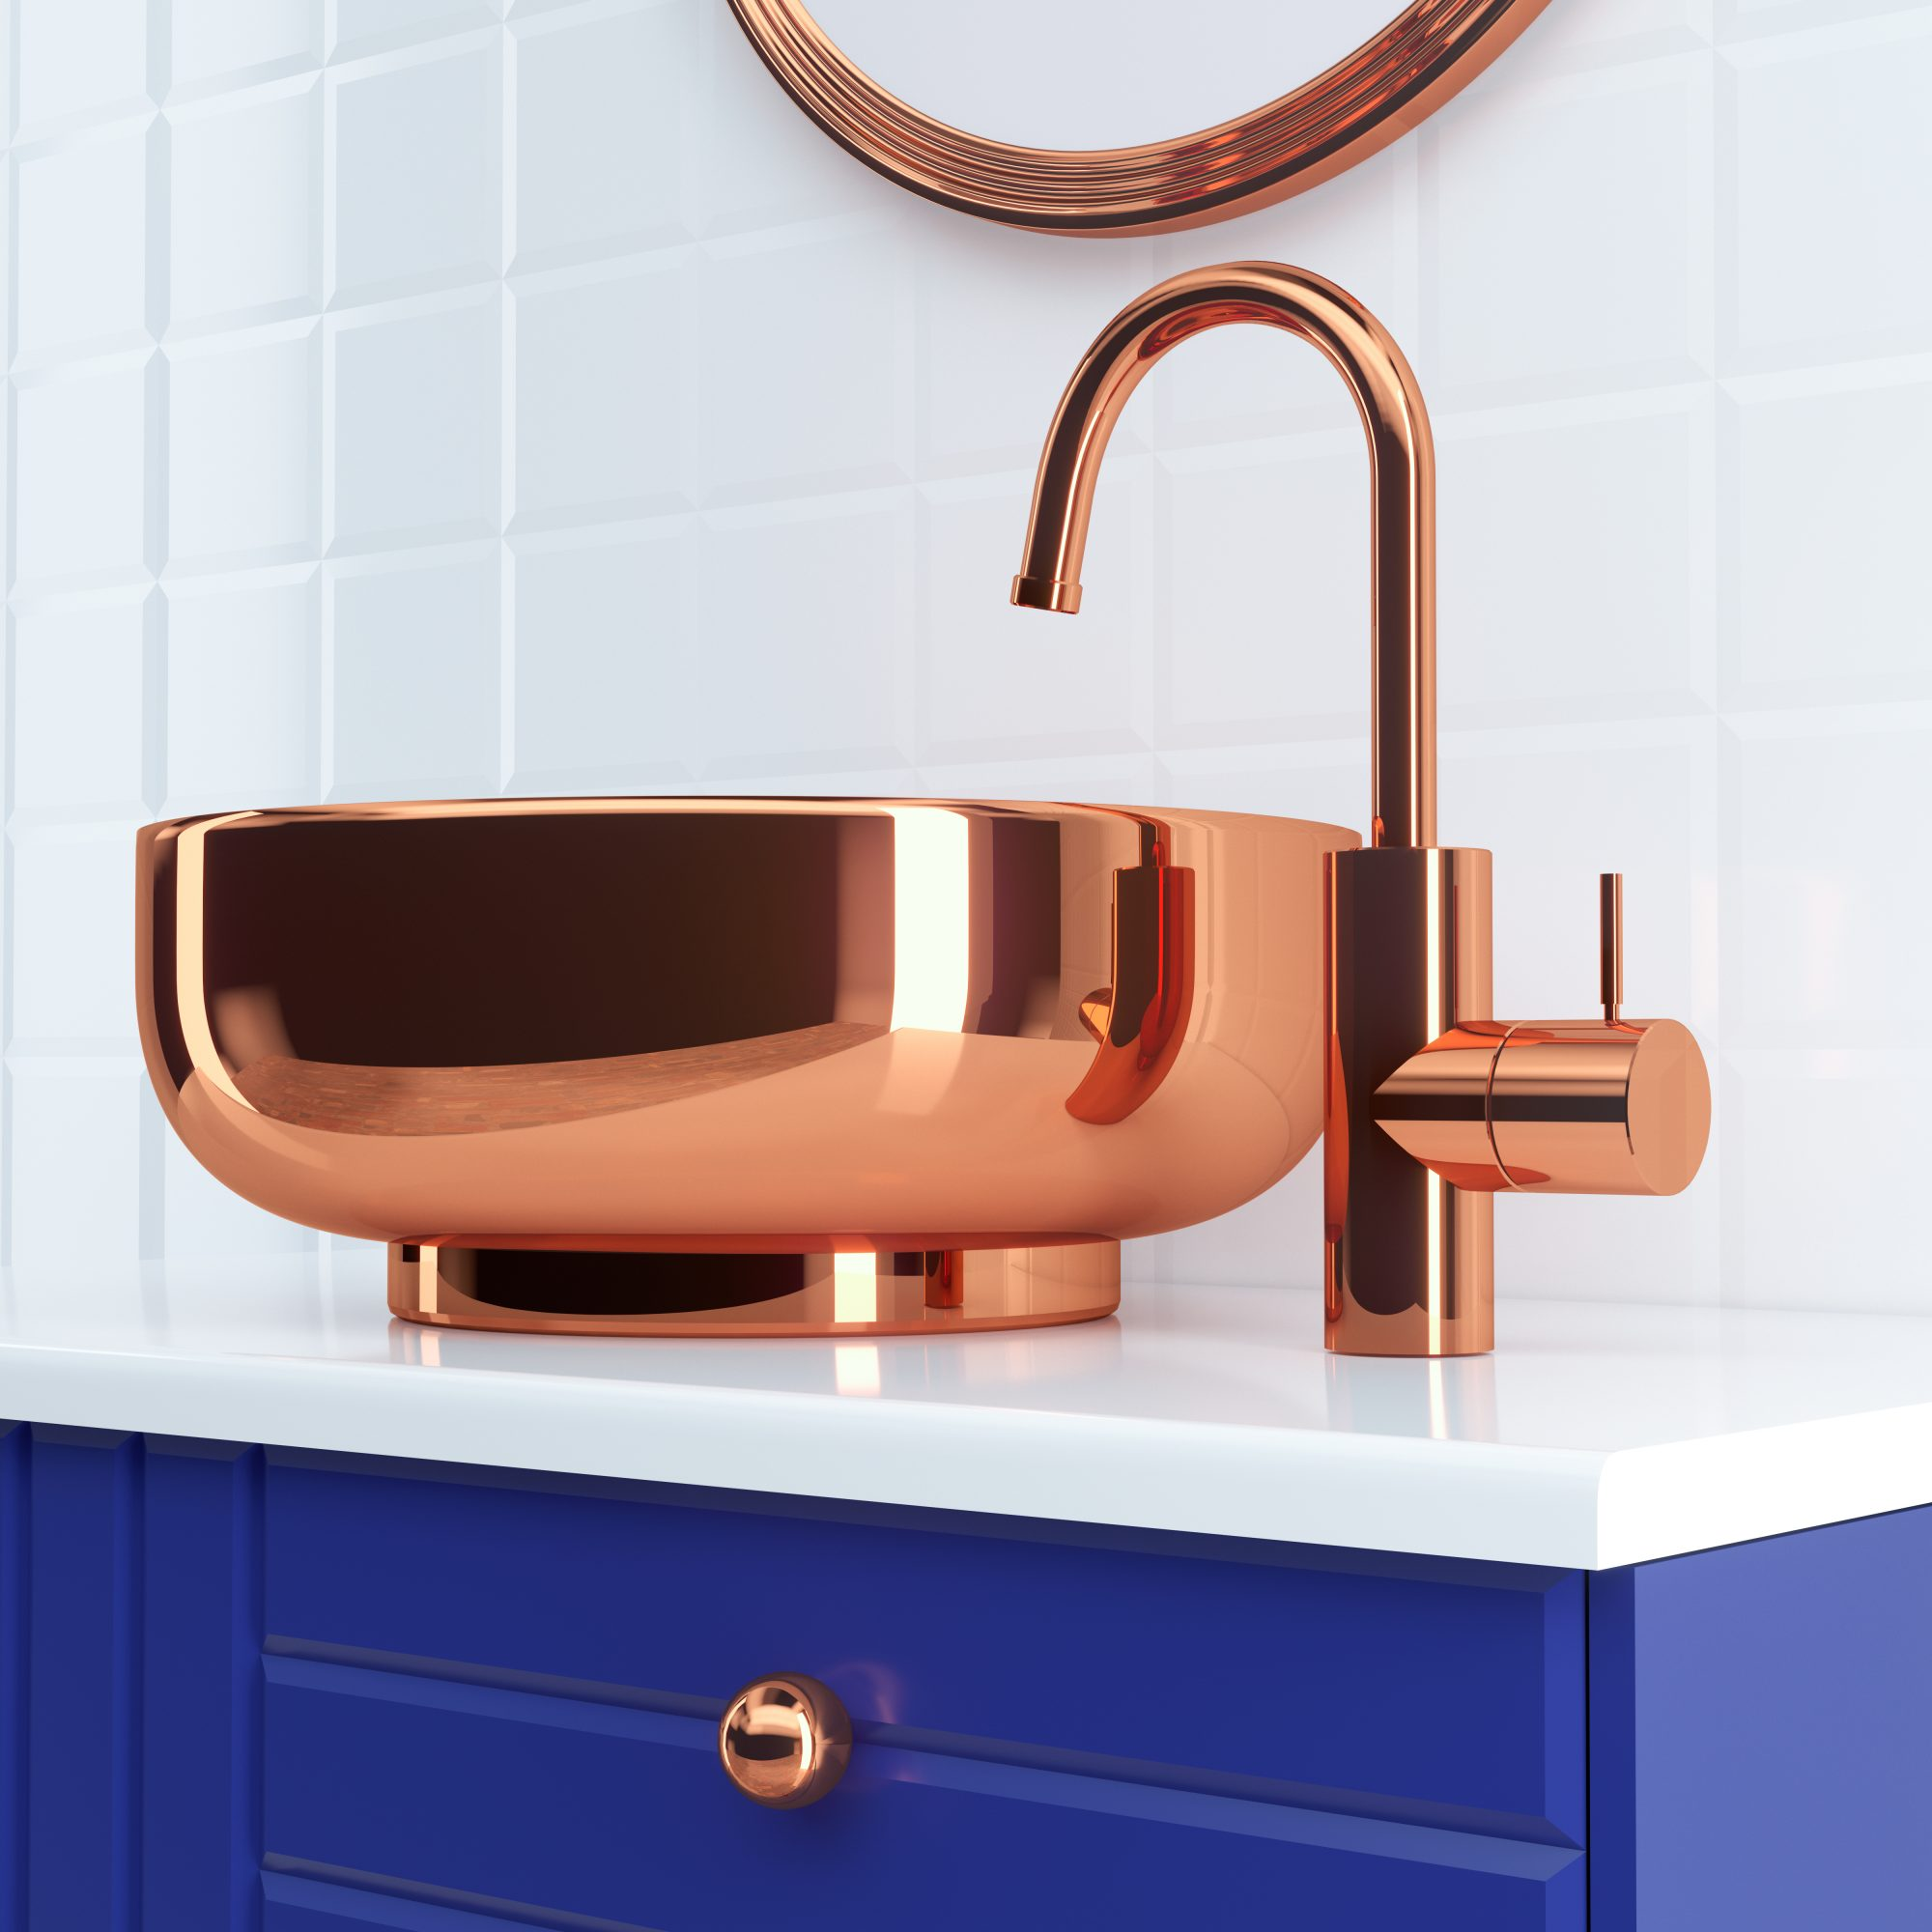 coronavirus home decor trends, copper sink and faucet